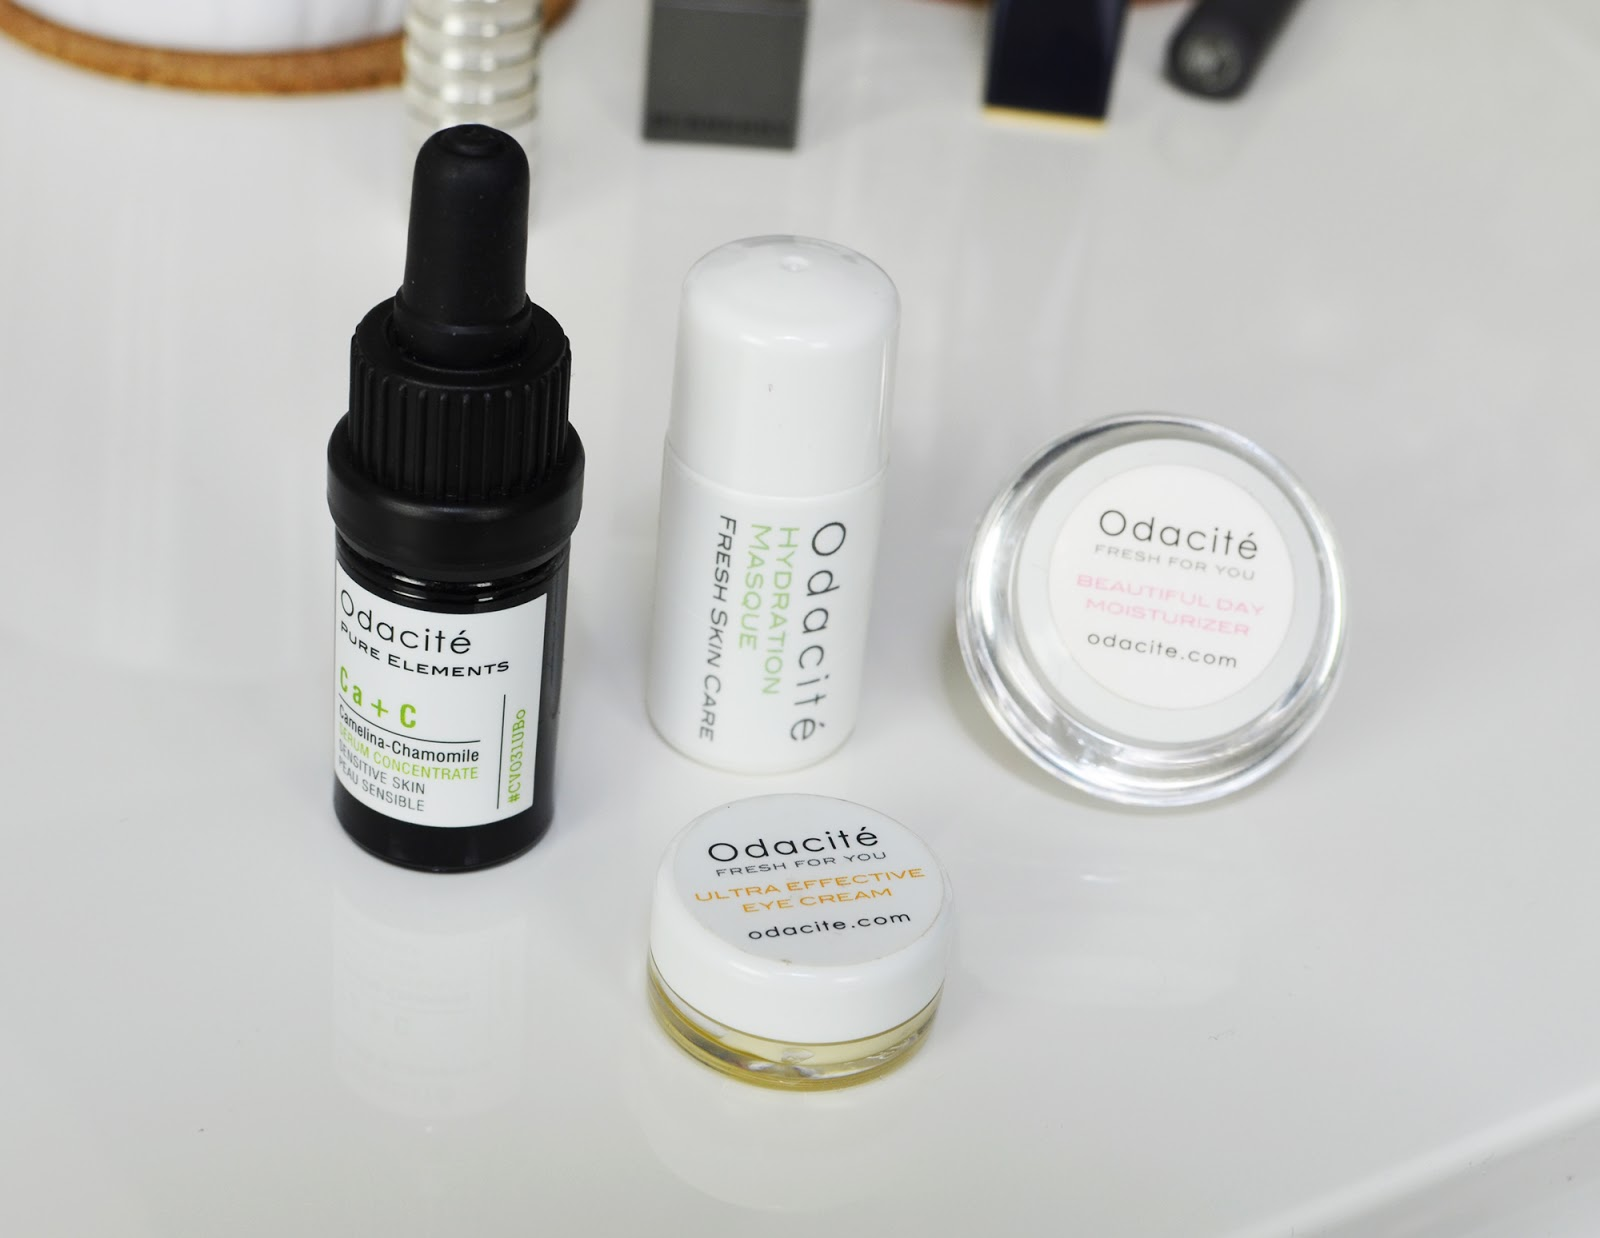 Four products from Odacité: a facial oil, an eye cream, a hydration masque, and a daytime moisturizer.